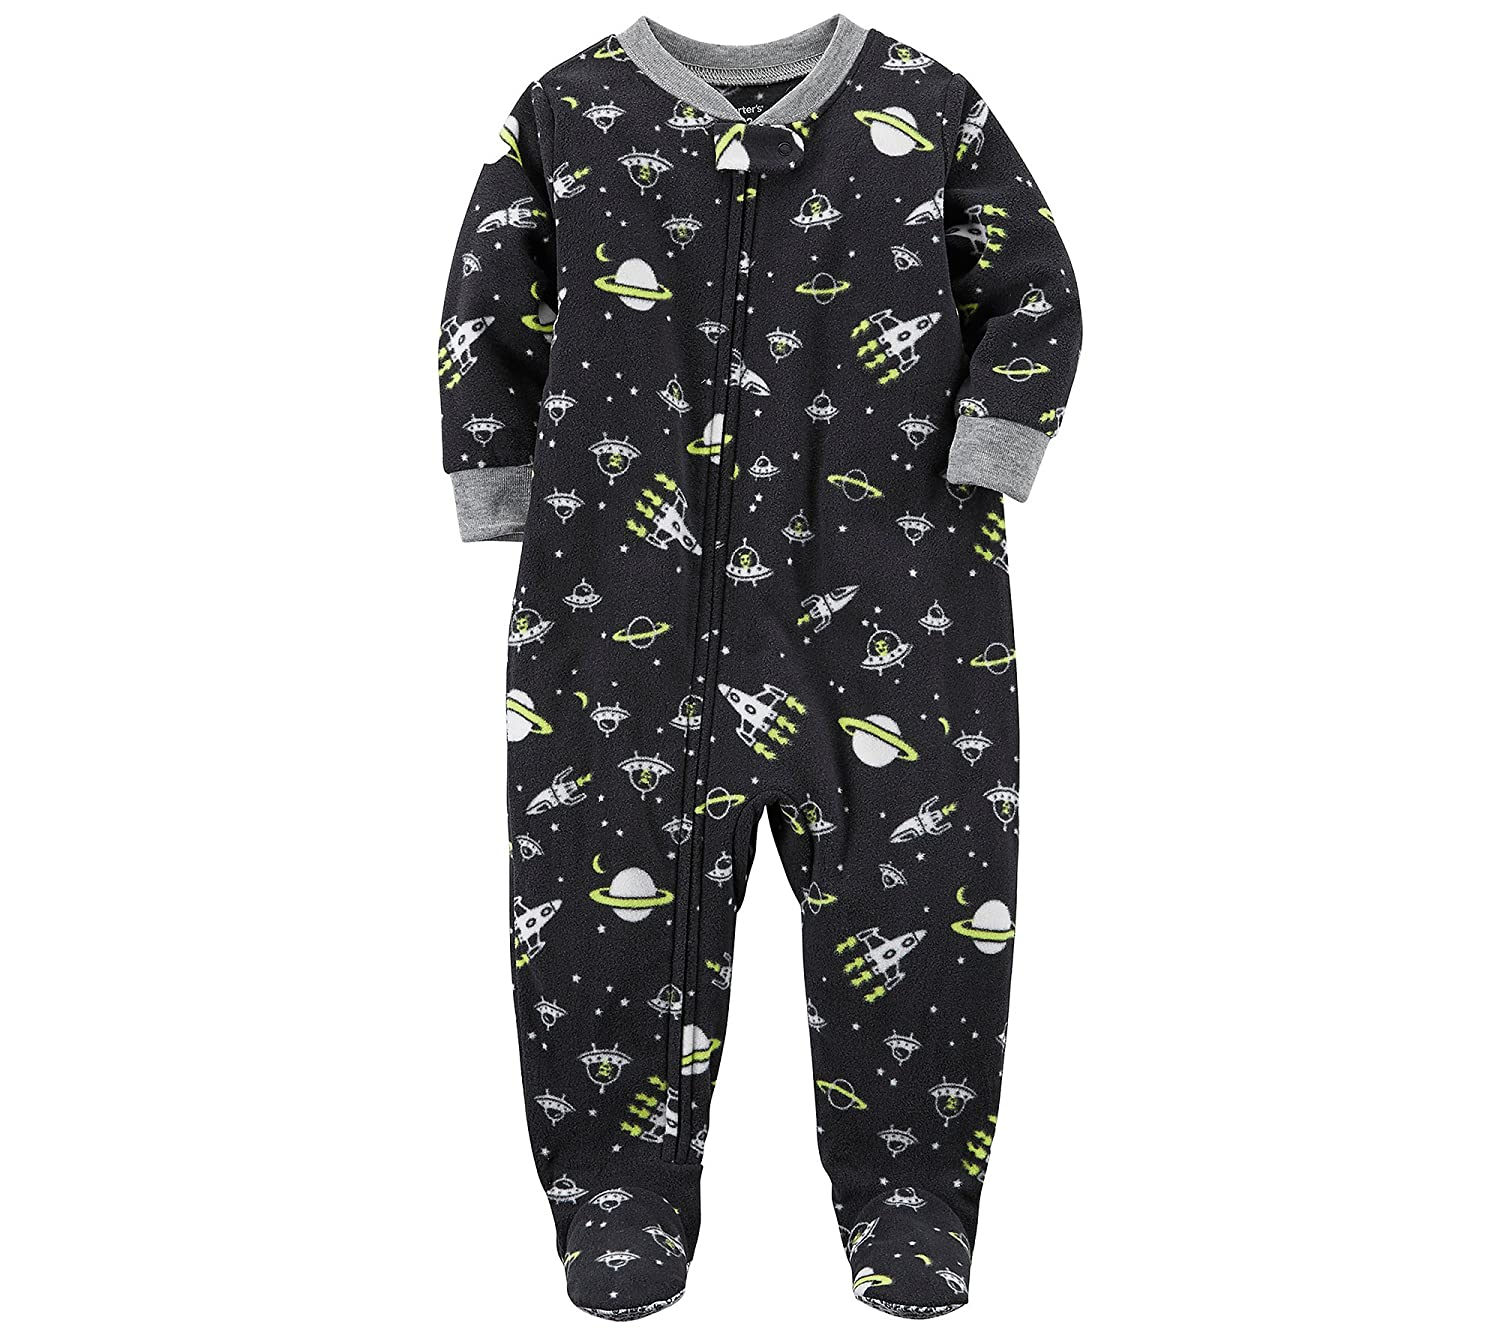 91e333ffee06 Amazon.com  Carter s Baby Boys  1 Pc Fleece 327g144  Clothing